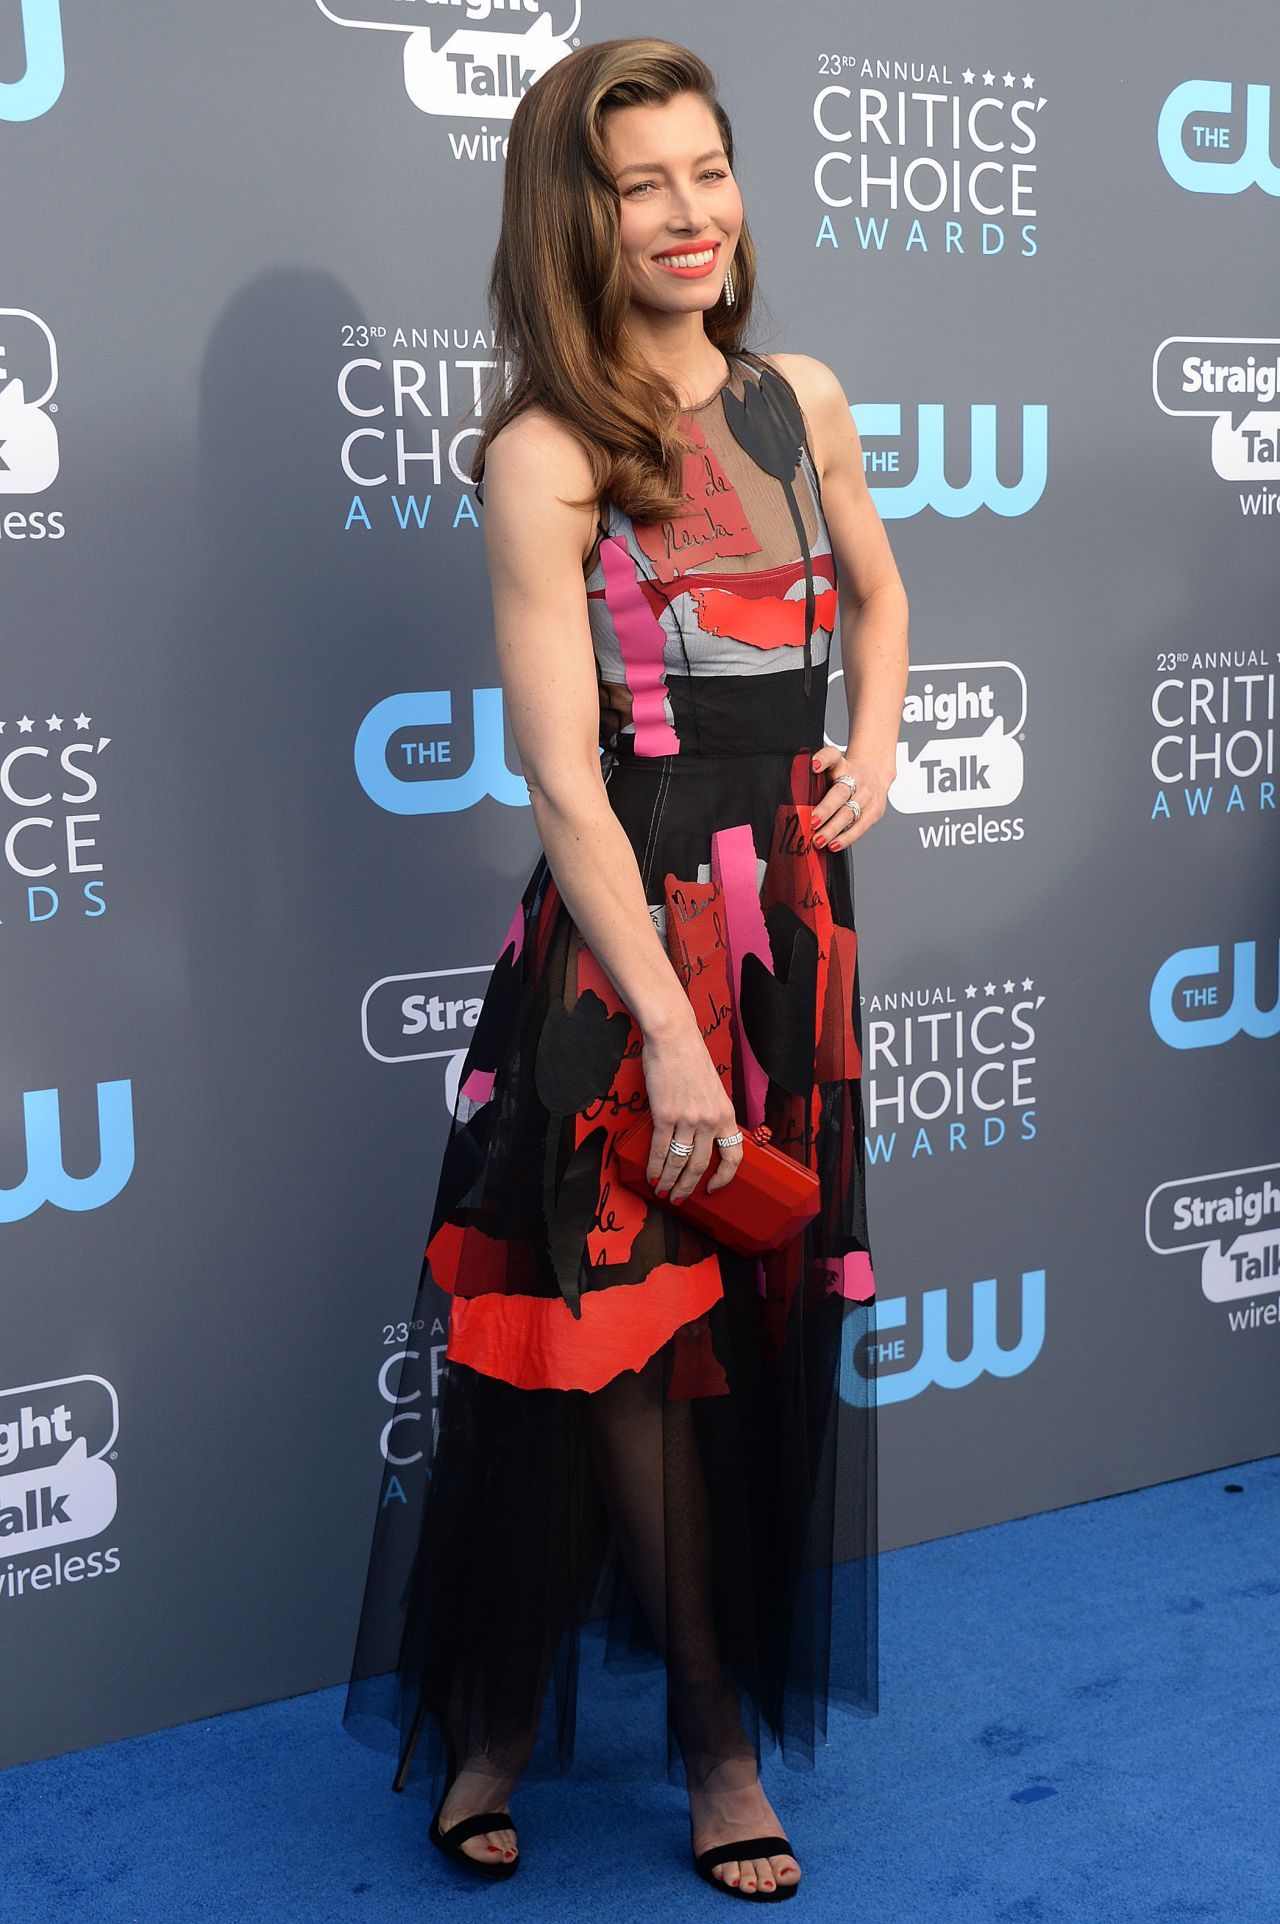 http://celebmafia.com/wp-content/uploads/2018/01/jessica-biel-2018-critics-choice-awards-6.jpg